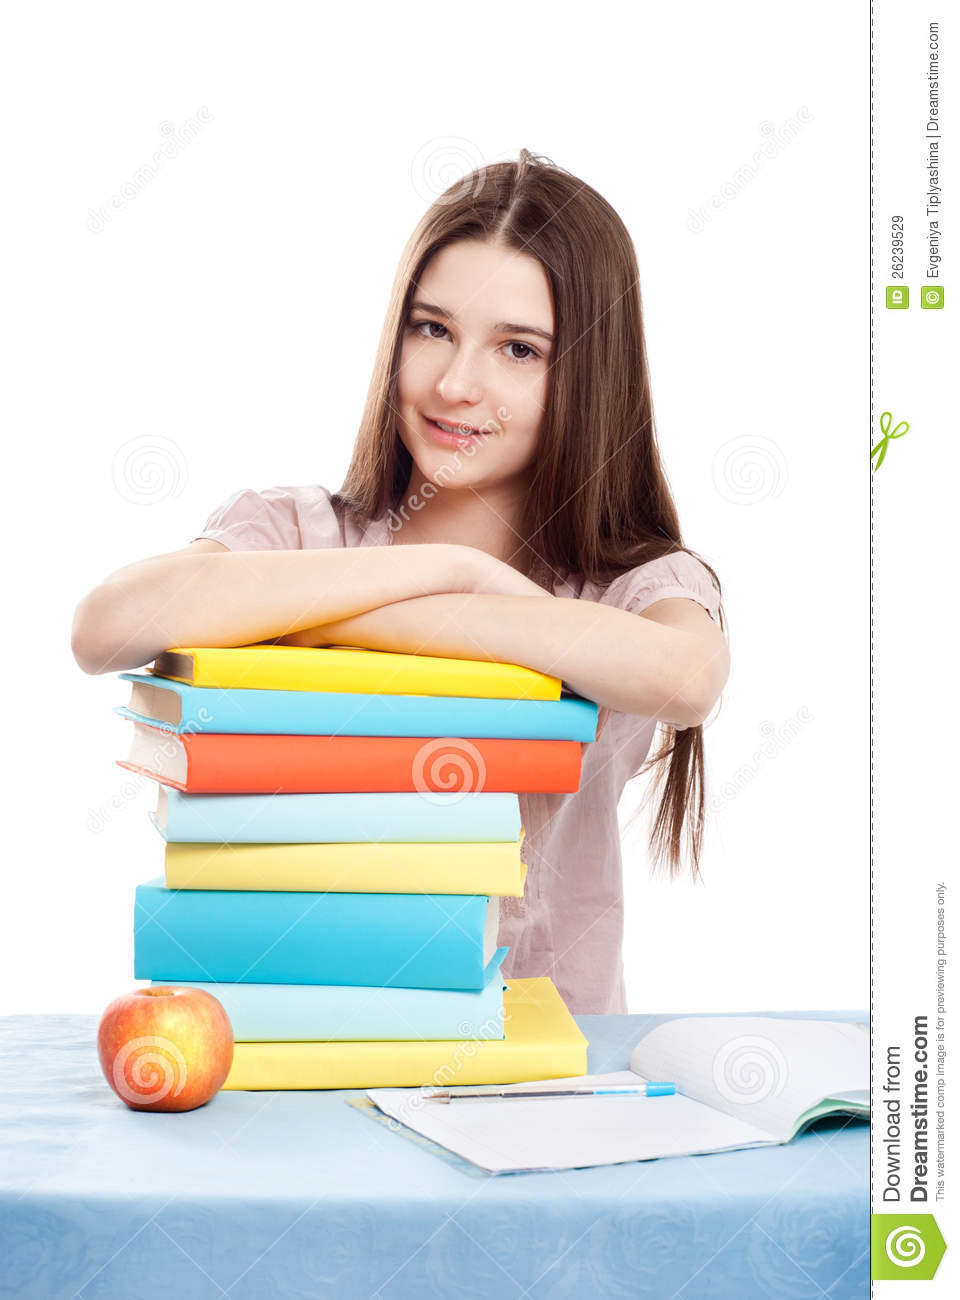 The girl child at the table with books